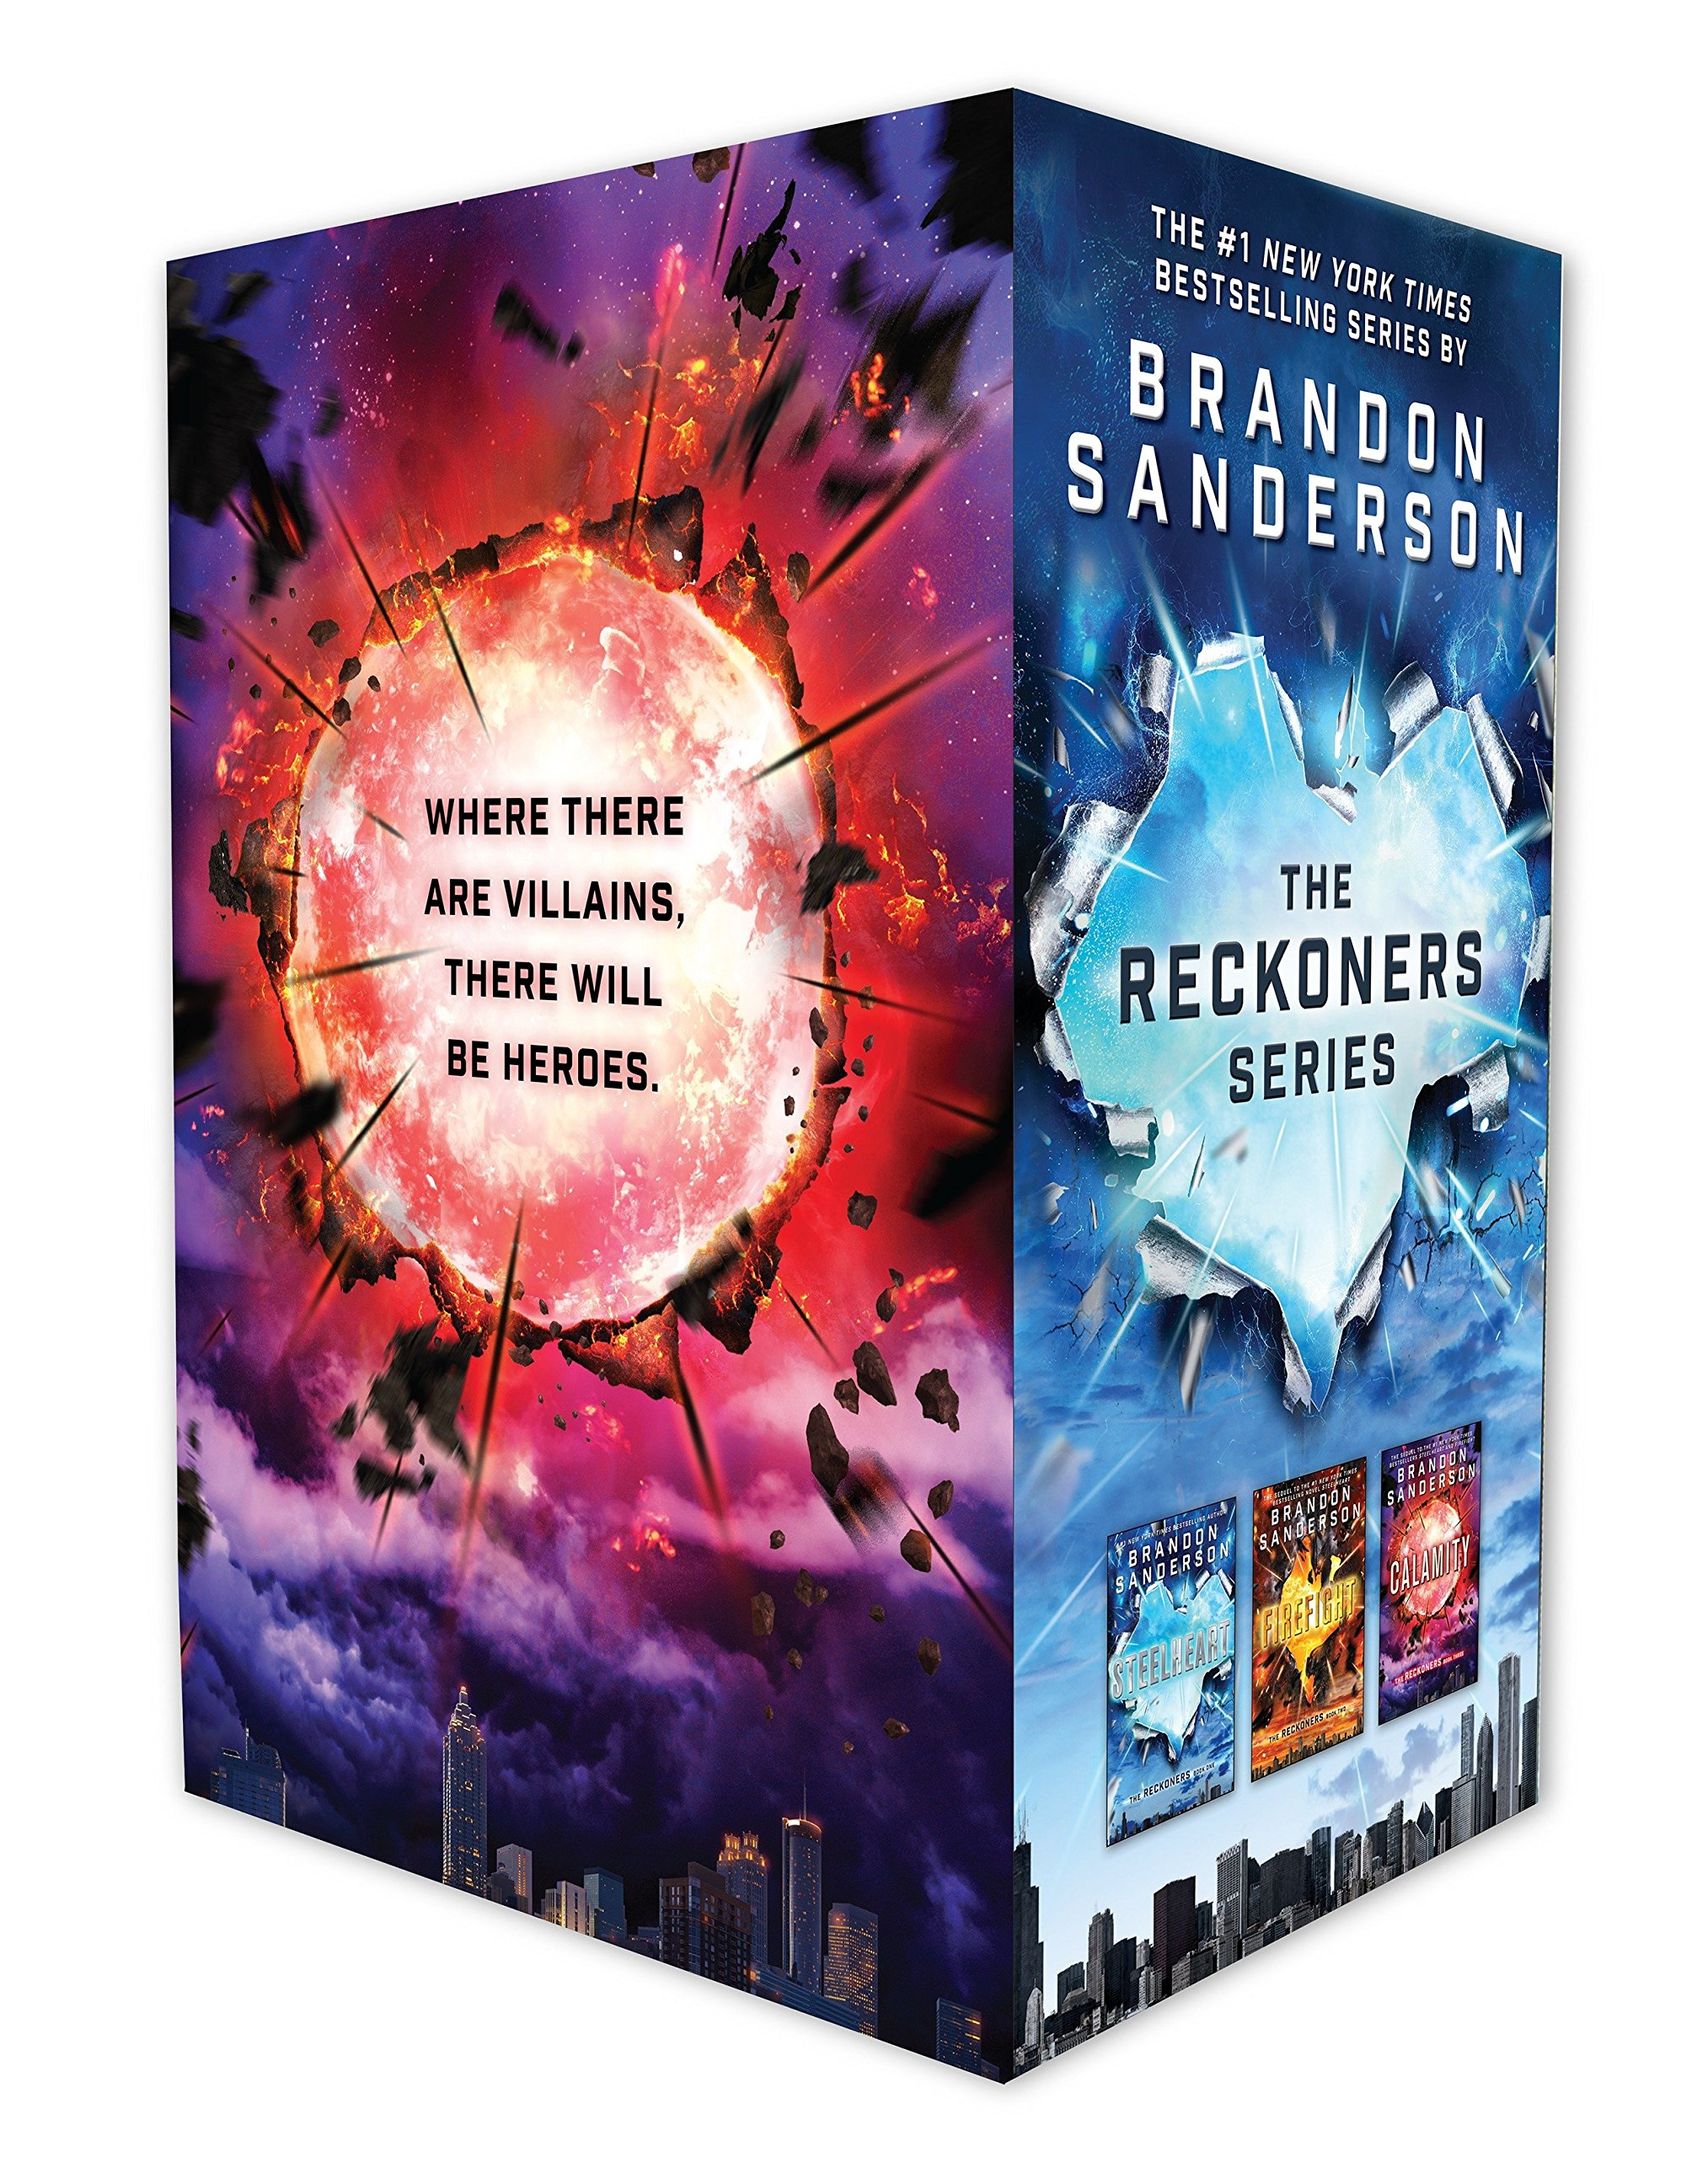 The Reckoners Series Boxed Set by Delacorte Press